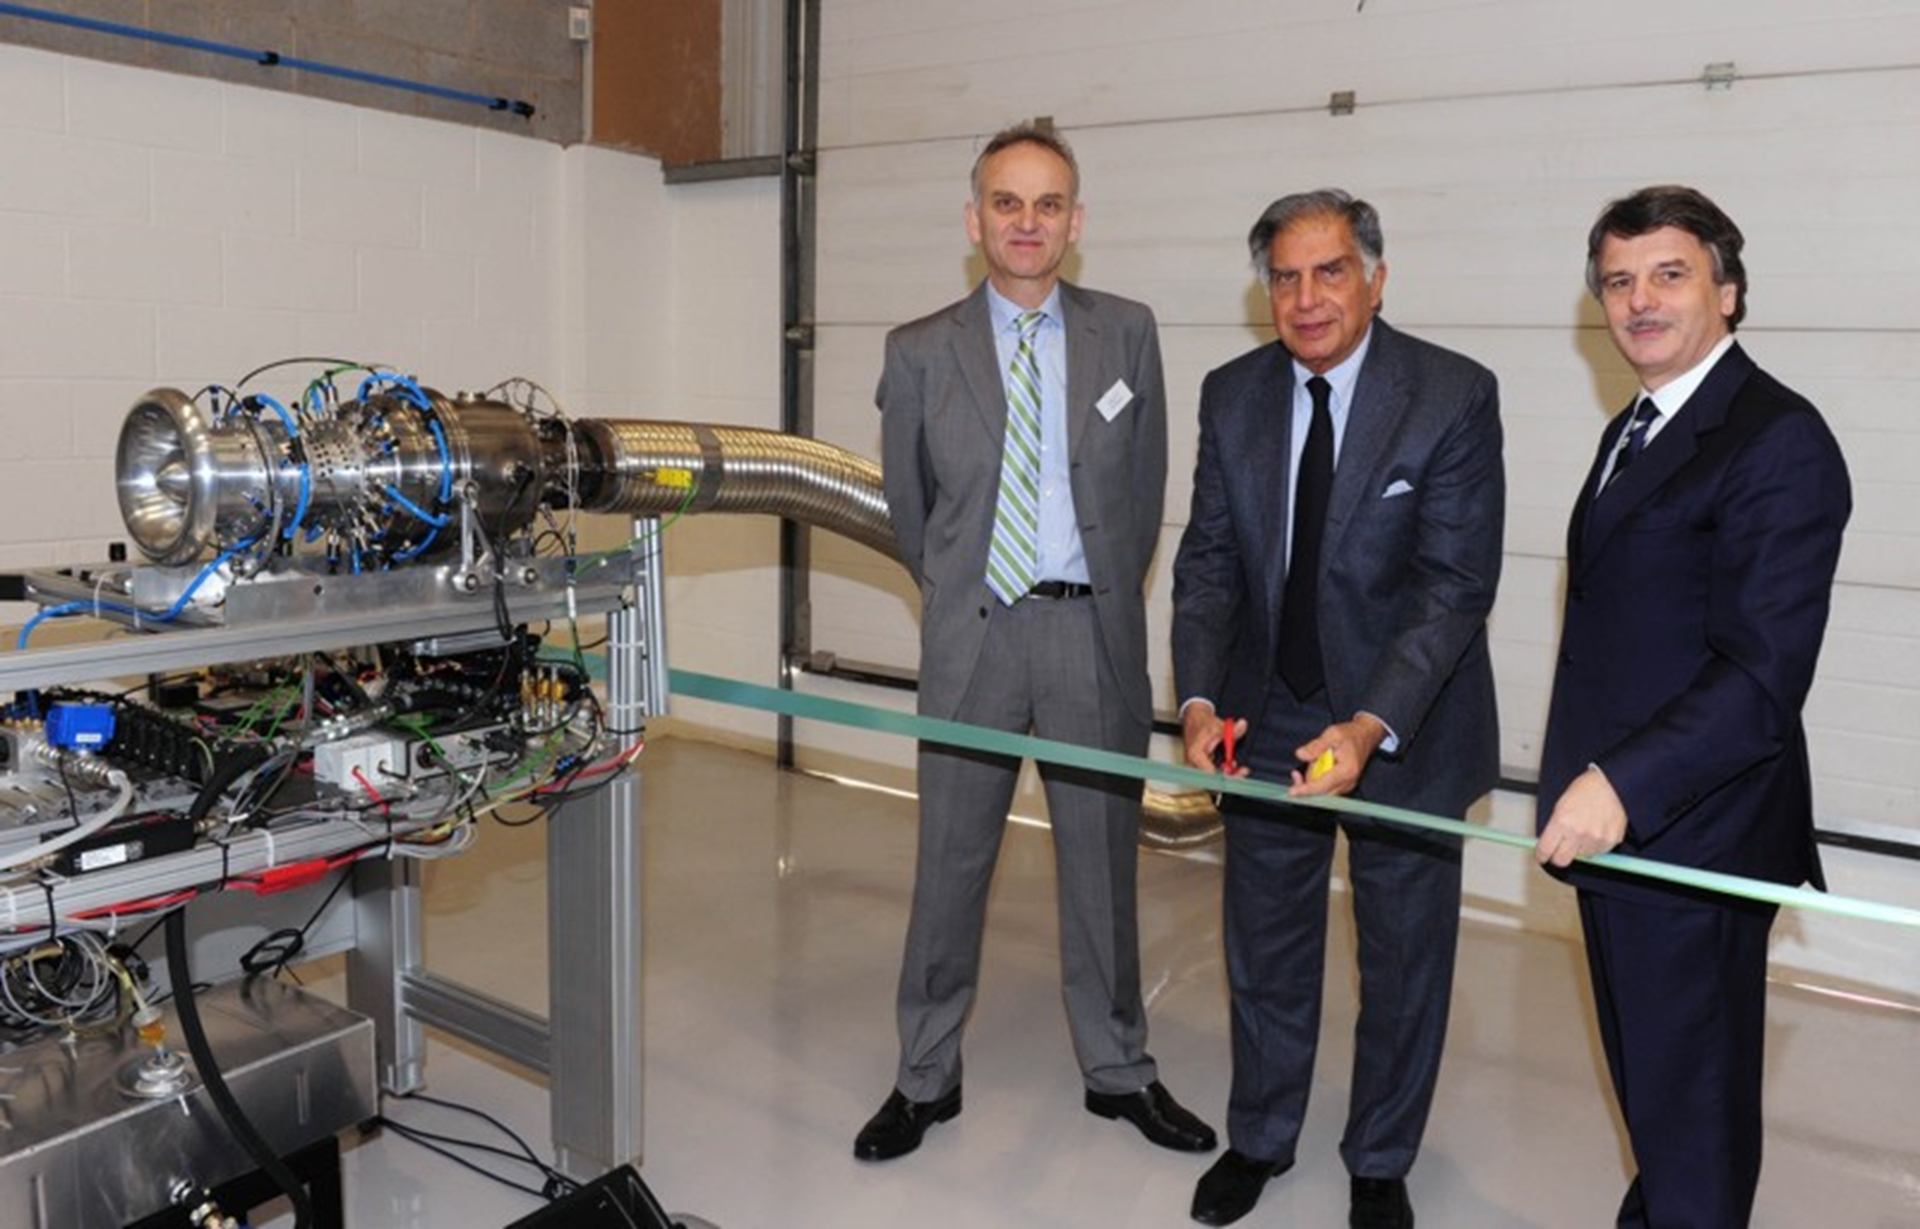 Mr Ratan Tata with Paul Barrett (left) and Dr Ralf Speth